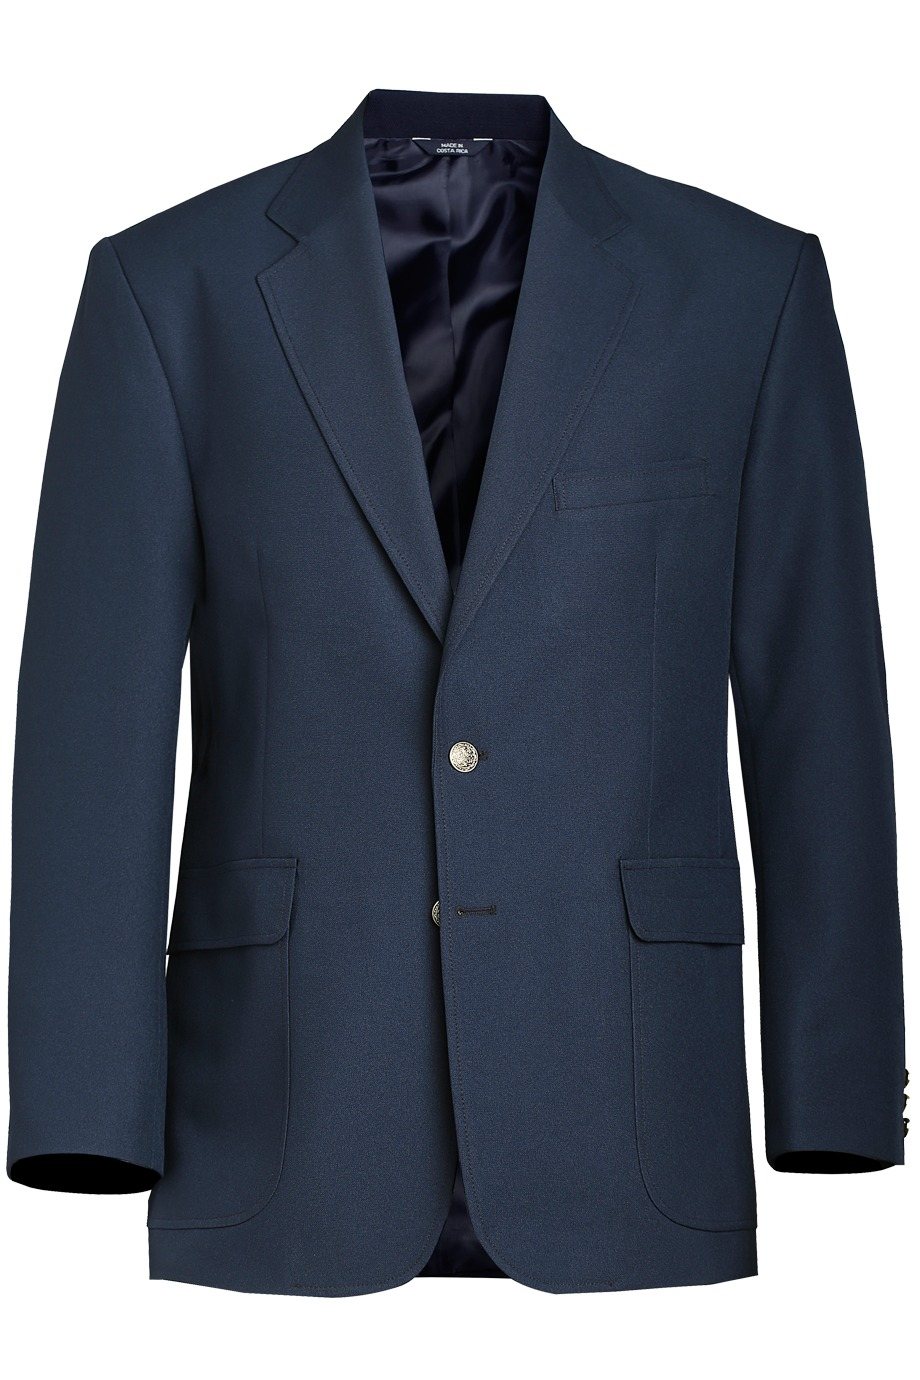 Edwards Garment 3500 - Men's Value Poly Blazer